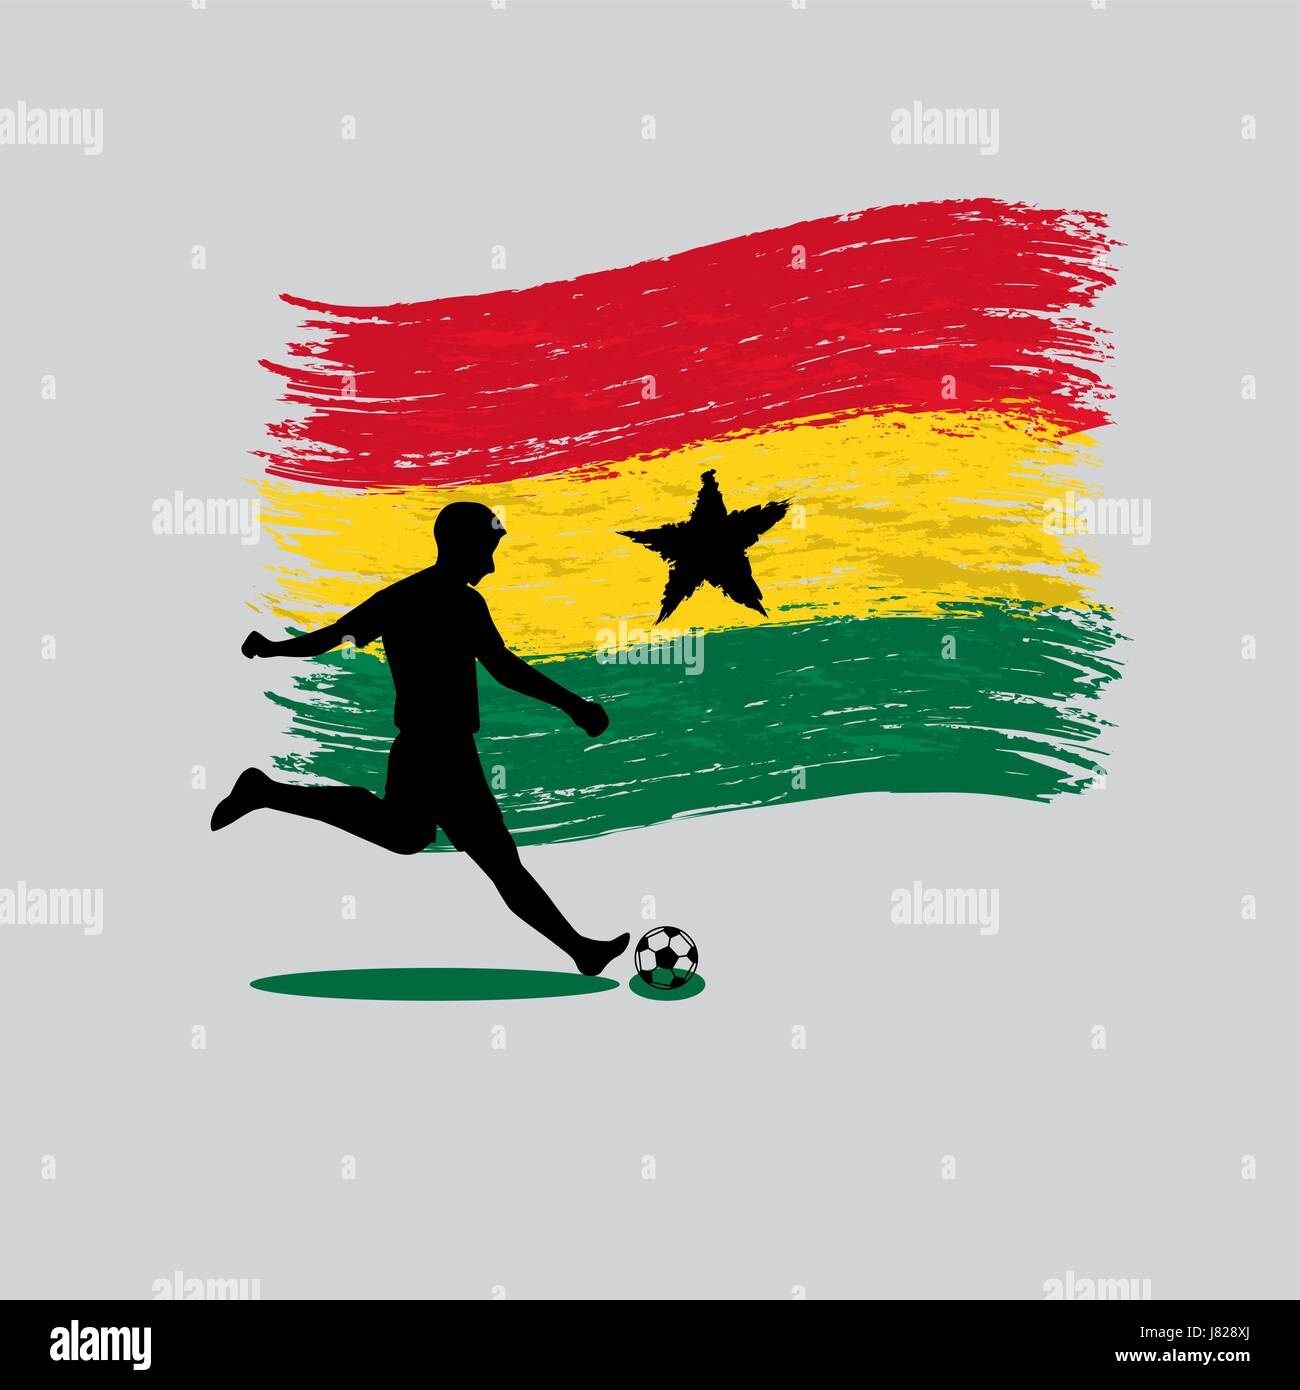 Soccer Player action with Republic of Ghana flag on background - Stock Vector